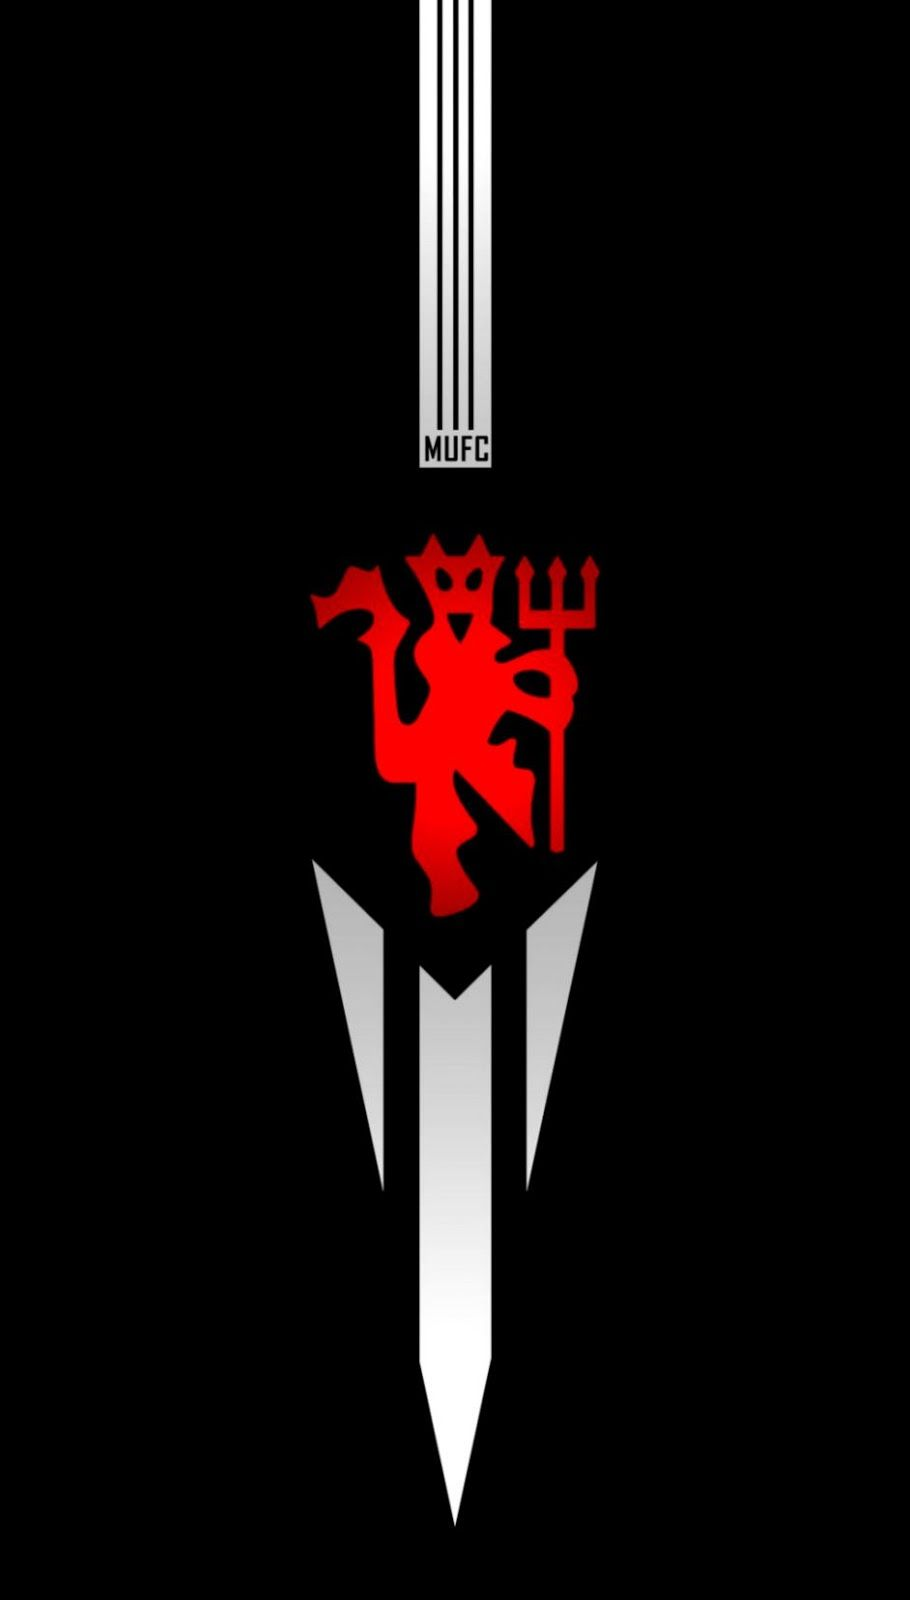 Manchester United Wallpapers Top Free Manchester United